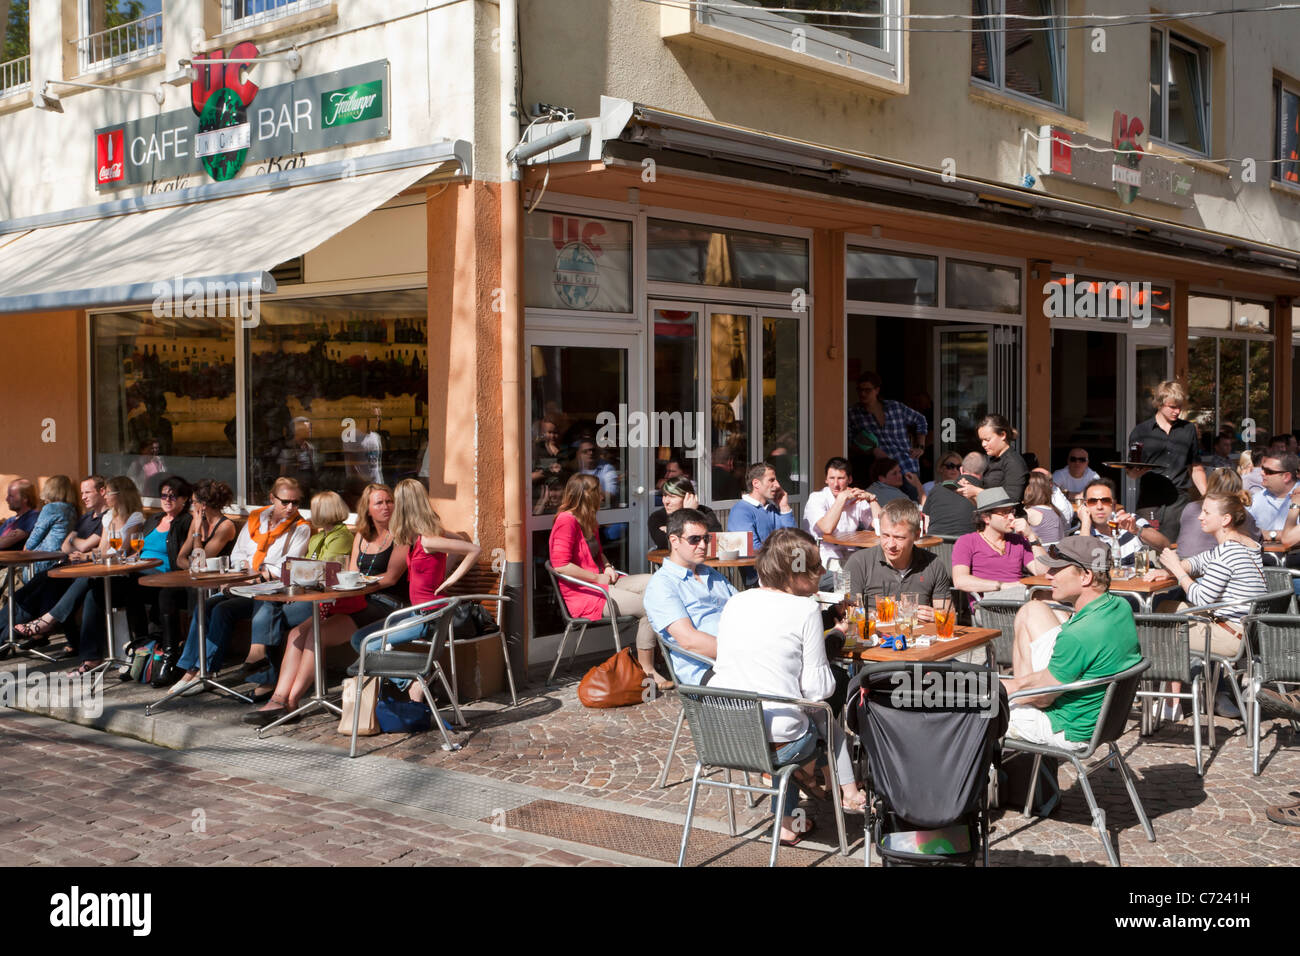 uc uni cafe cafe bar freiburg im breisgau baden wurttemberg stock photo 38770413 alamy. Black Bedroom Furniture Sets. Home Design Ideas